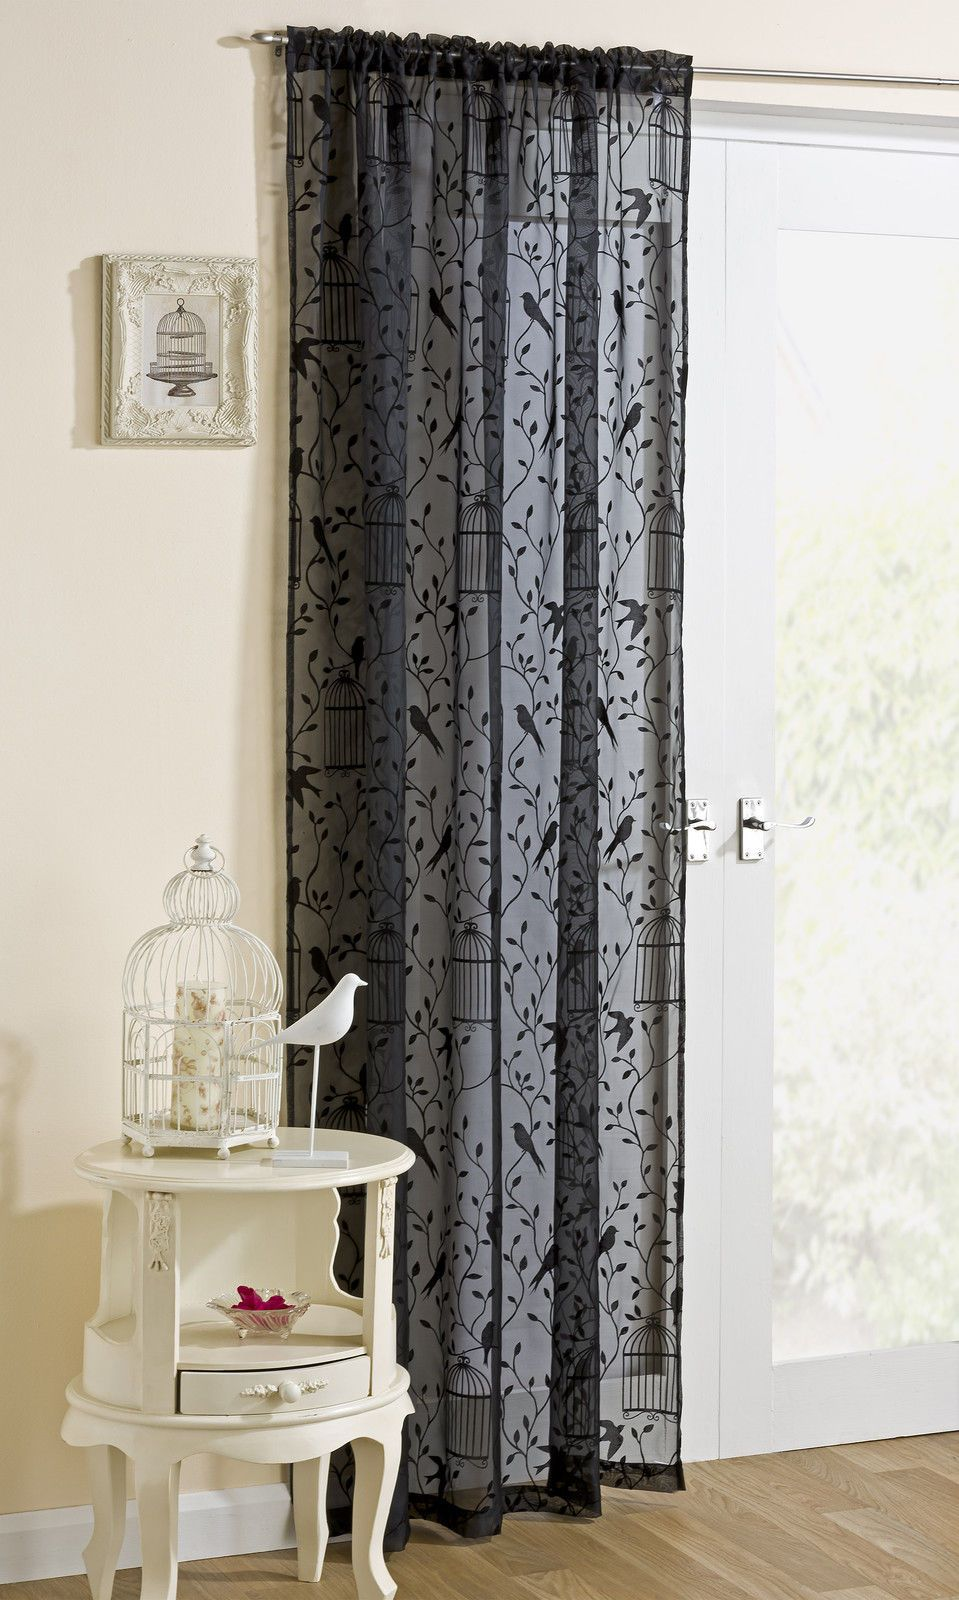 Details About Nightingale Bird Cage Leaves Net Voile Curtain Panel